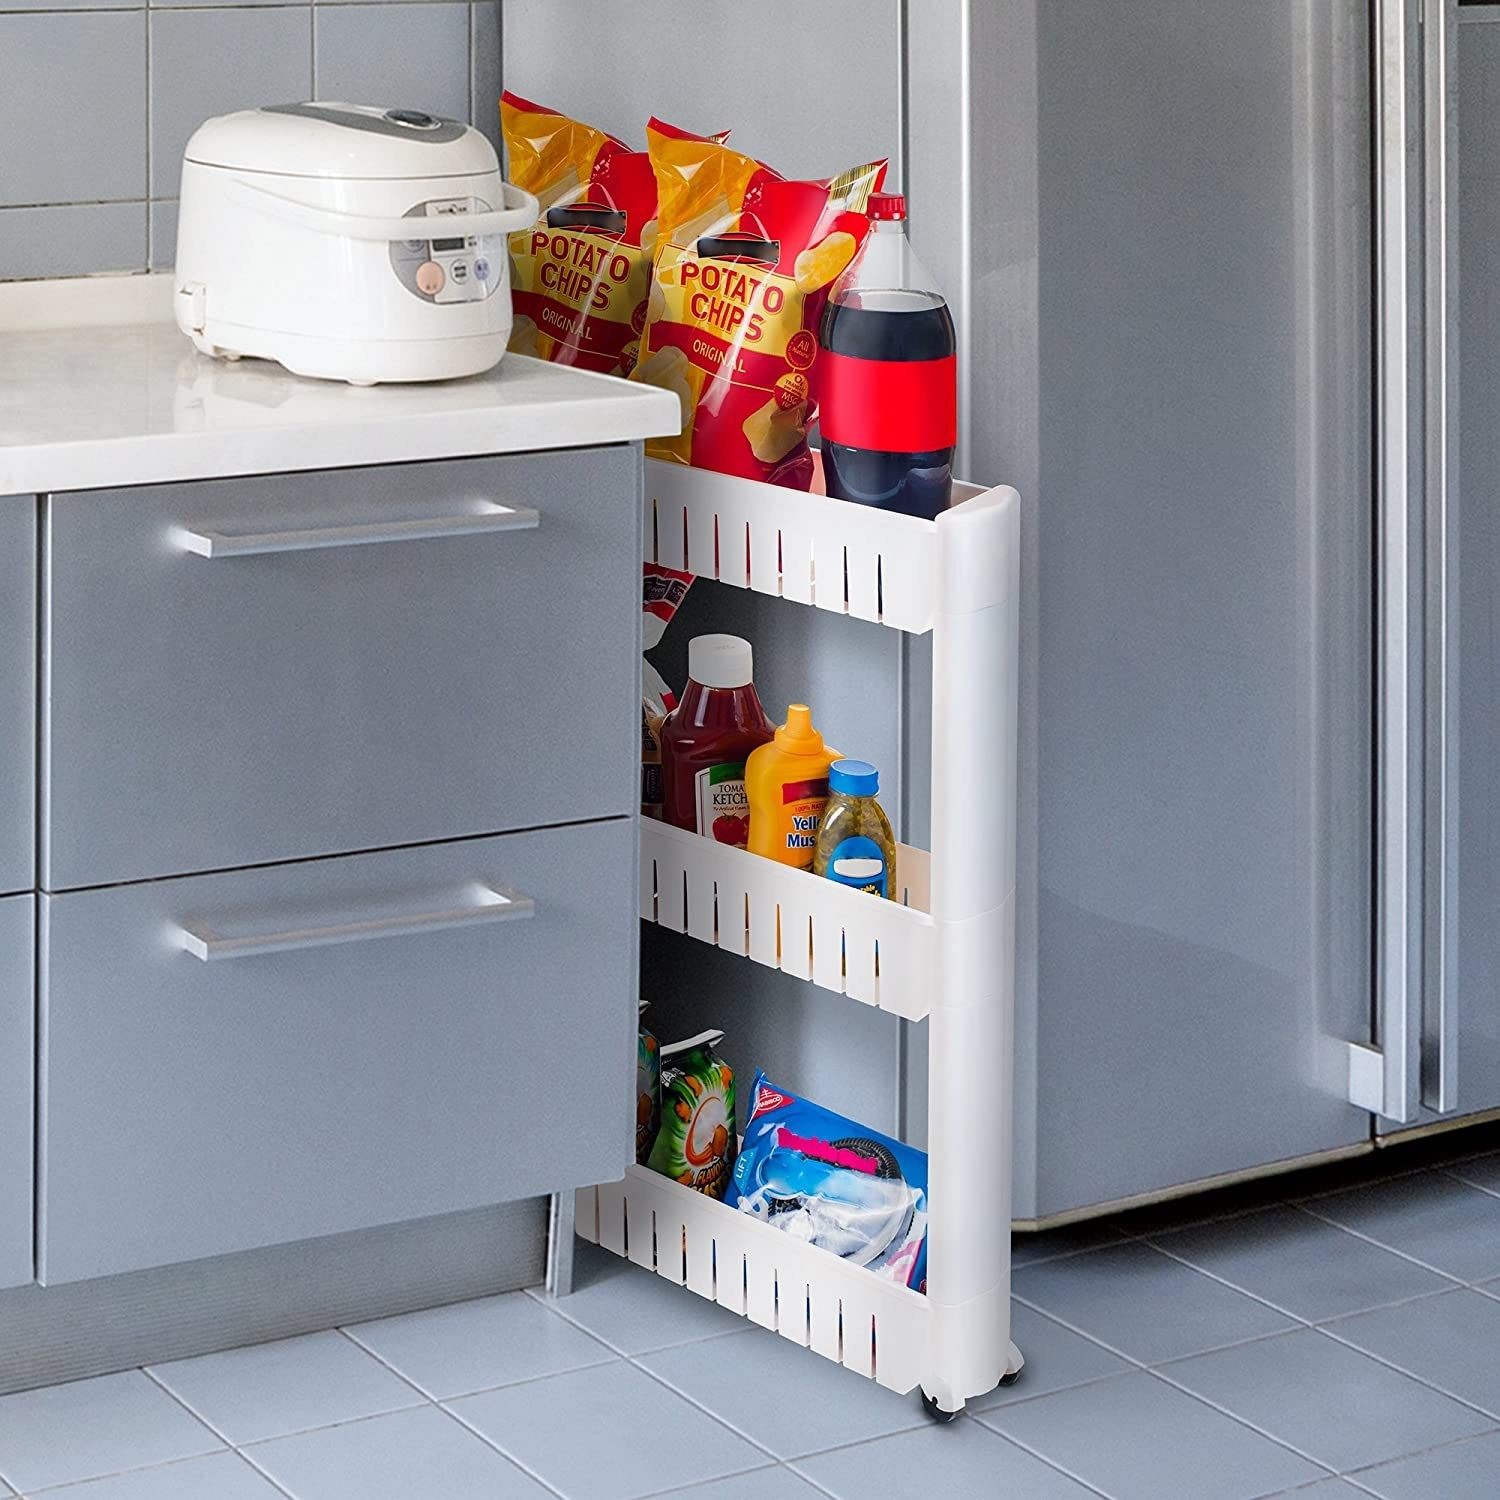 A pull-out storage unit in the gap between a counter and fridge